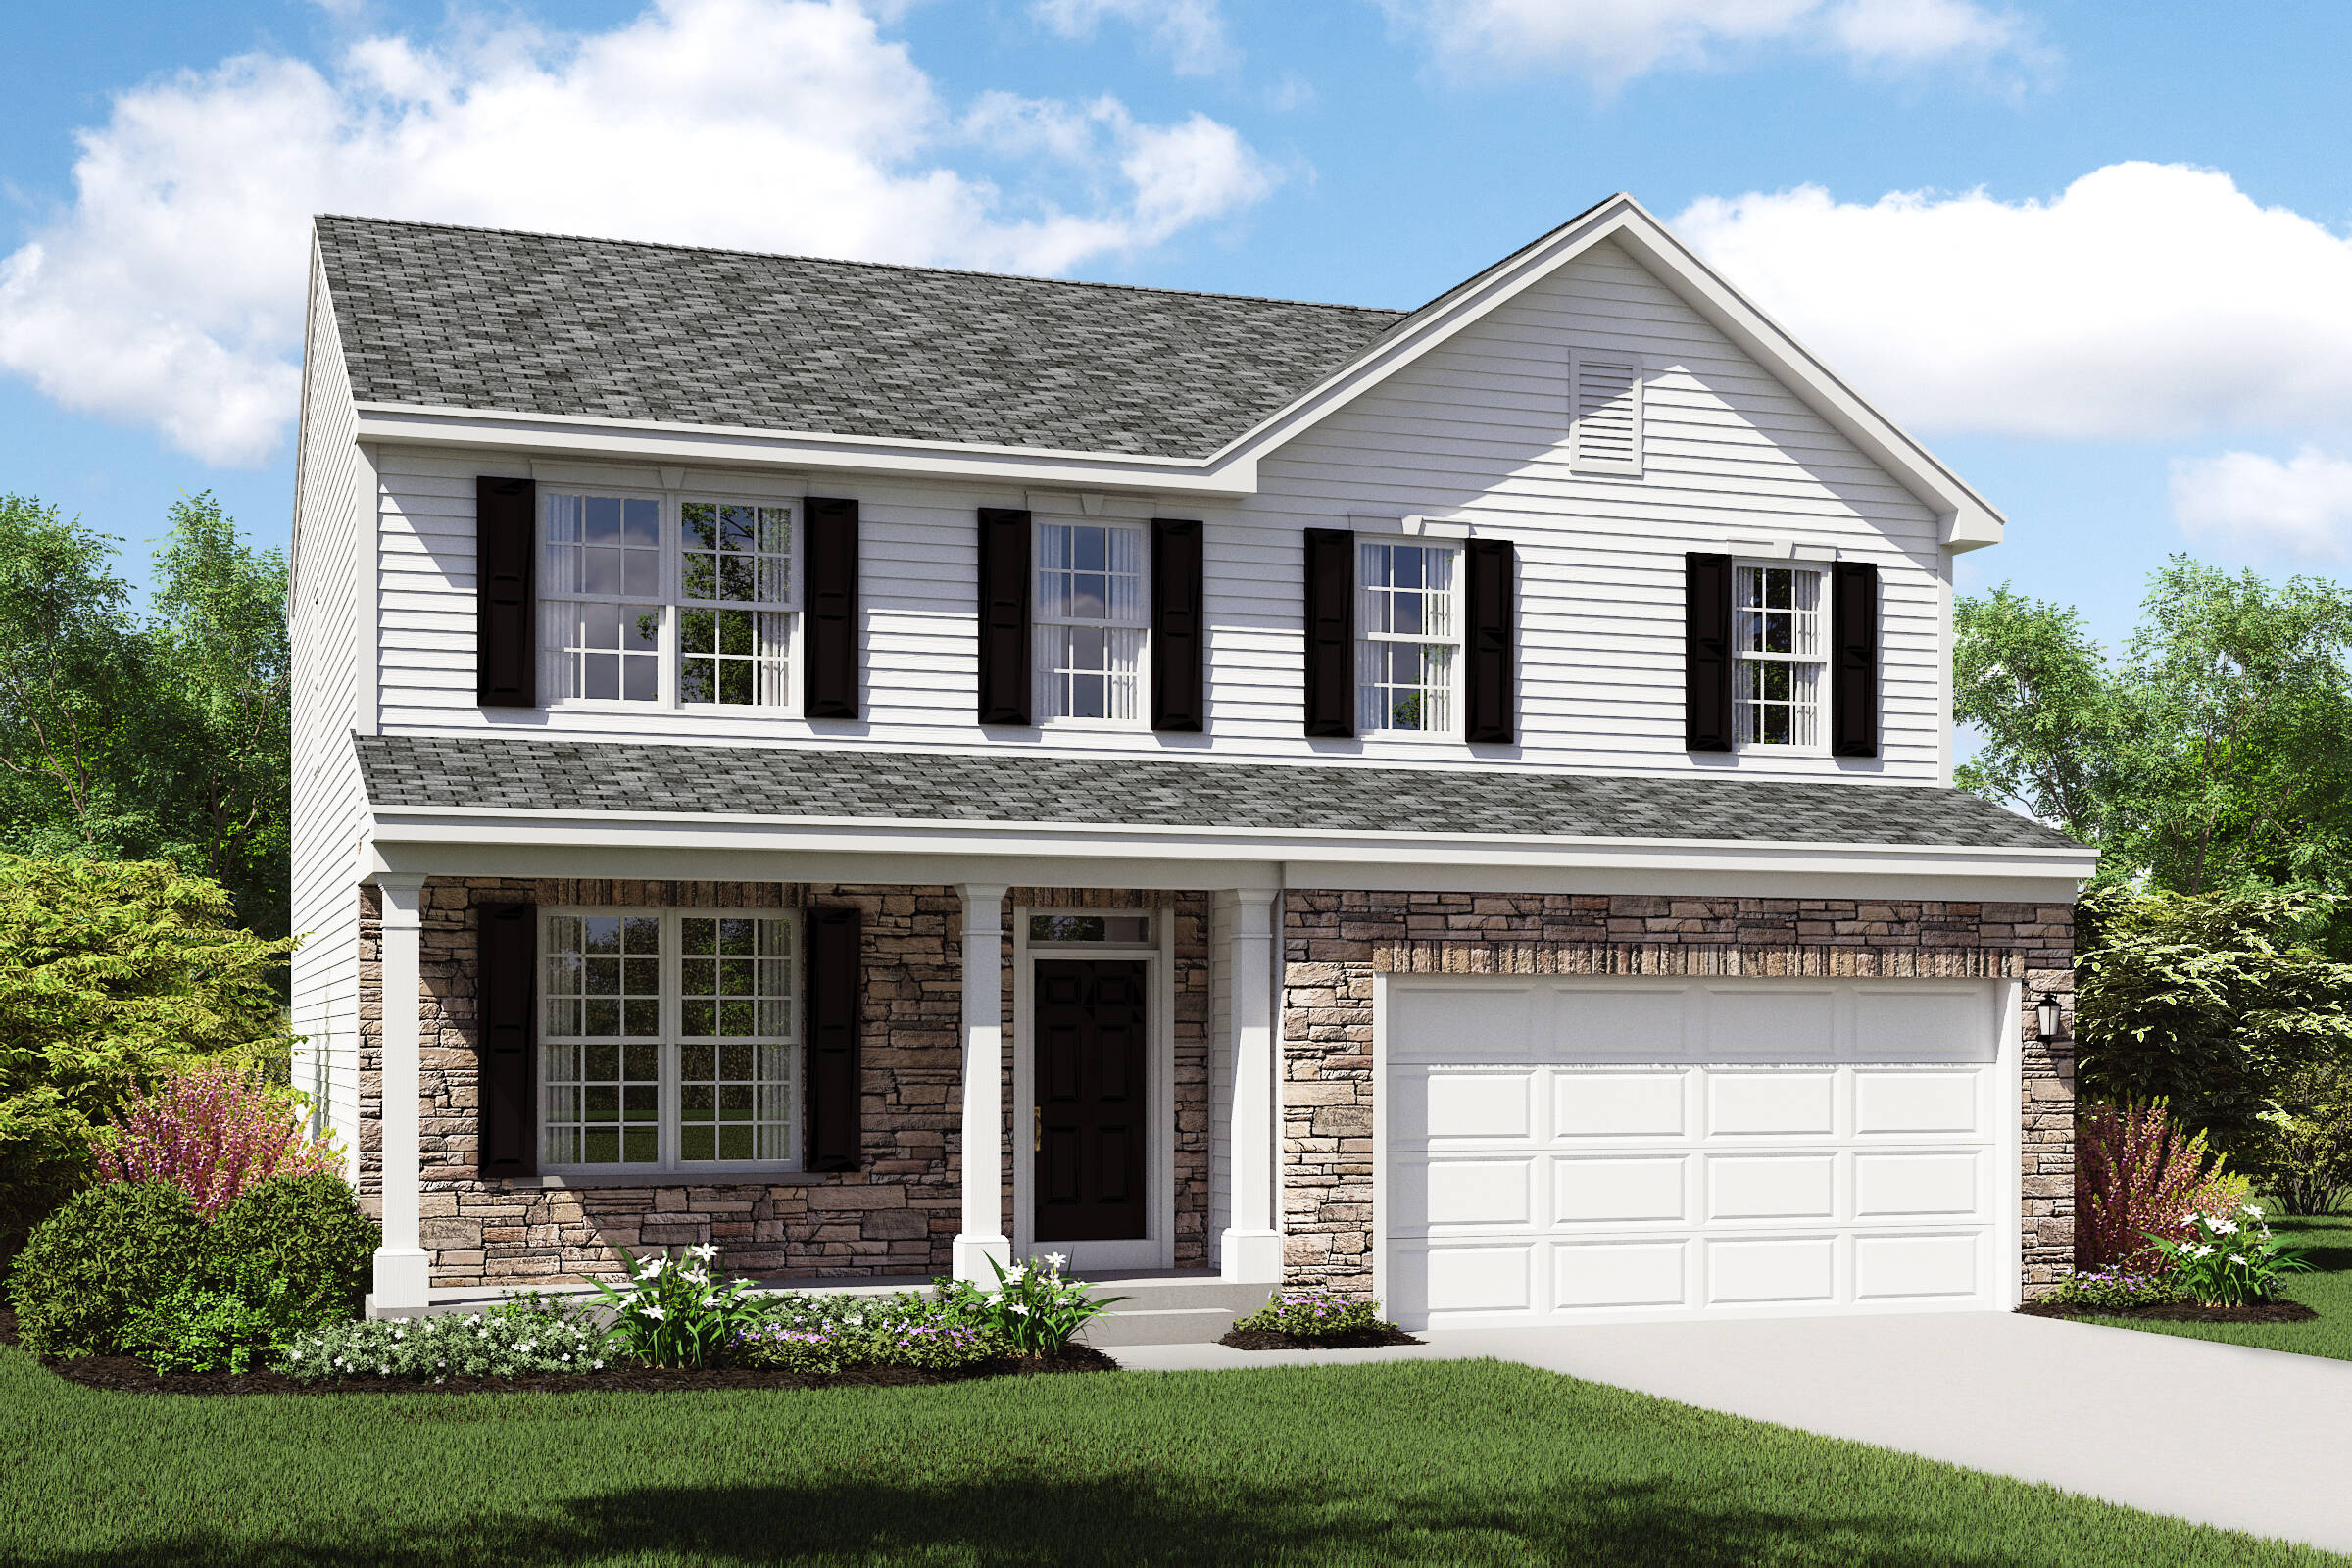 hanover c stone edg new cleveland home designs